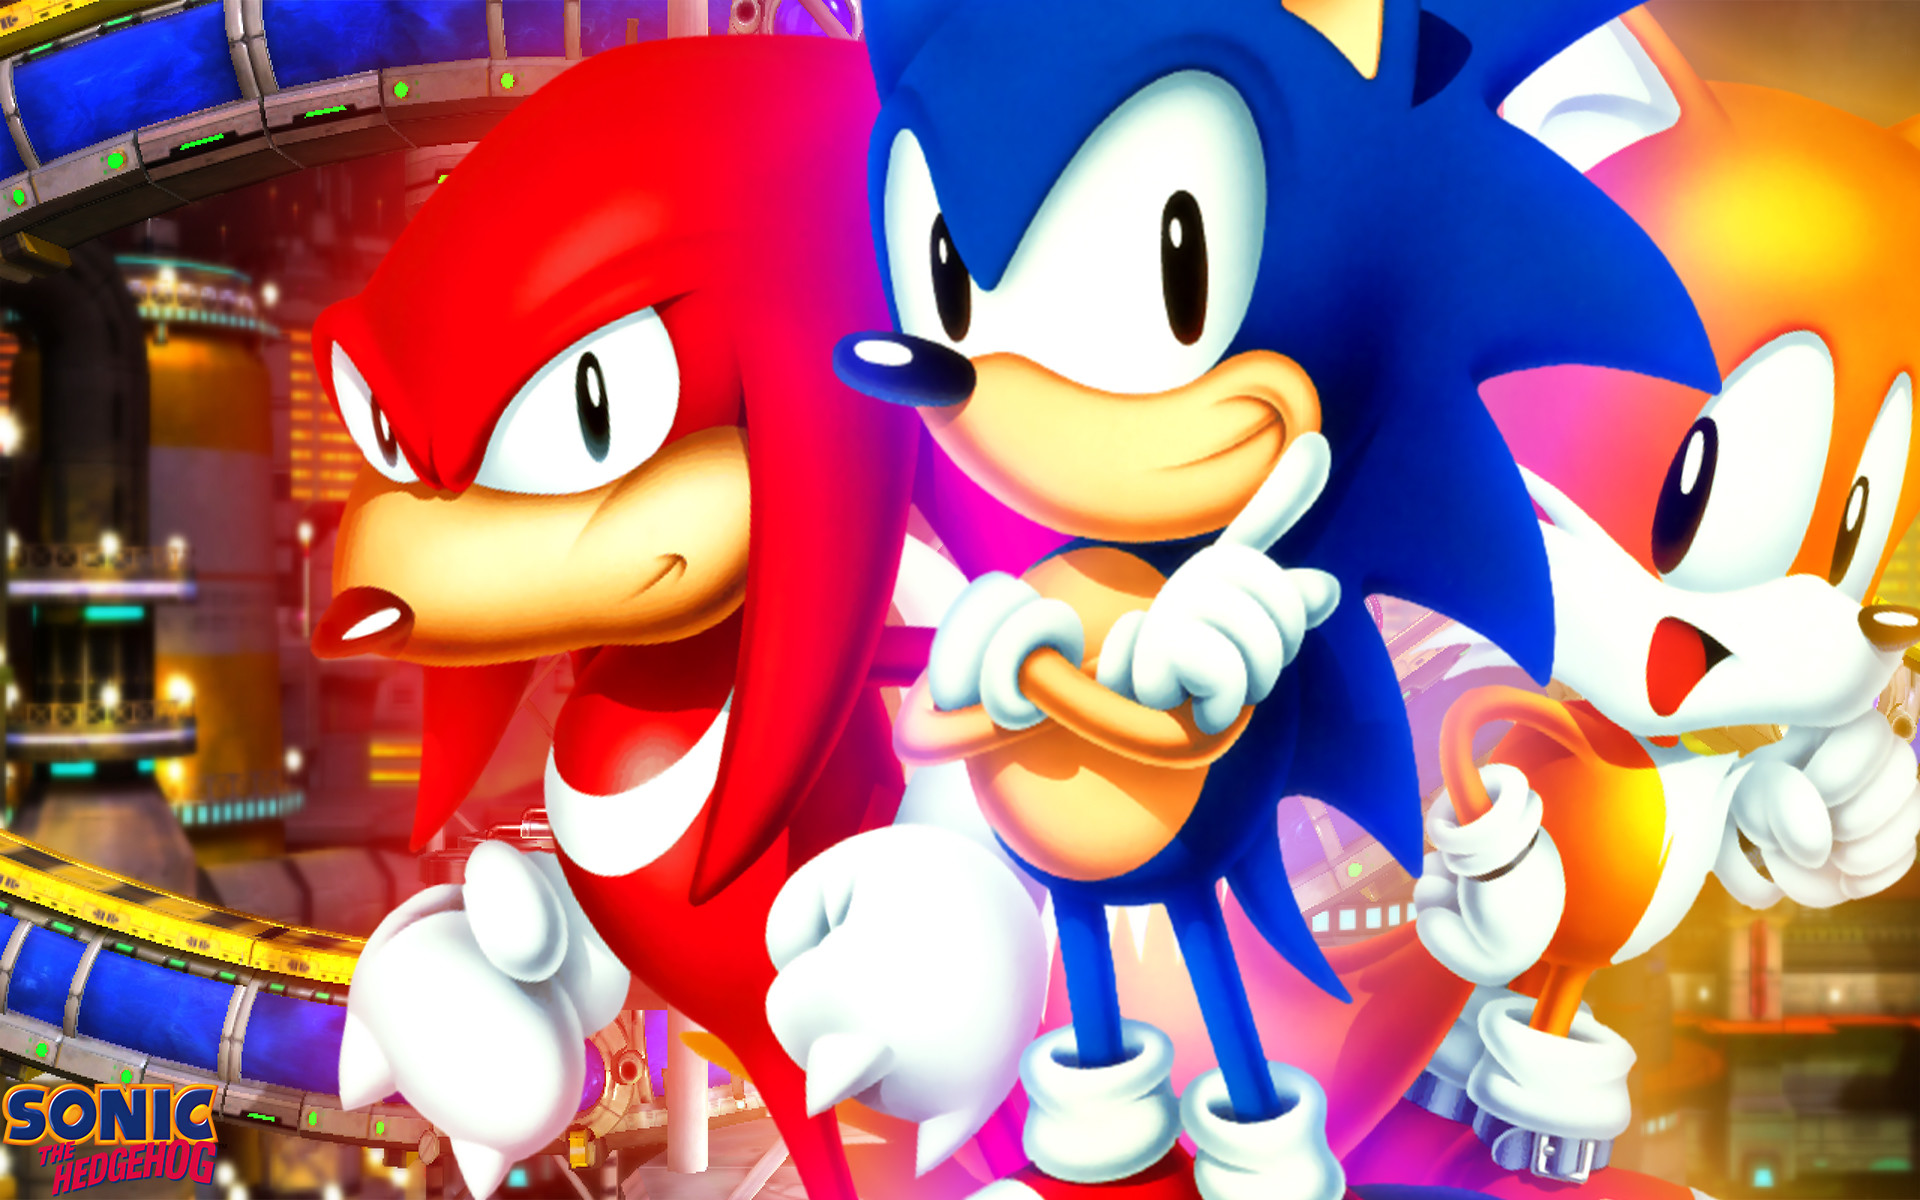 Free Download Classic Sonic Wallpaper Hd 68 Images 1920x1200 For